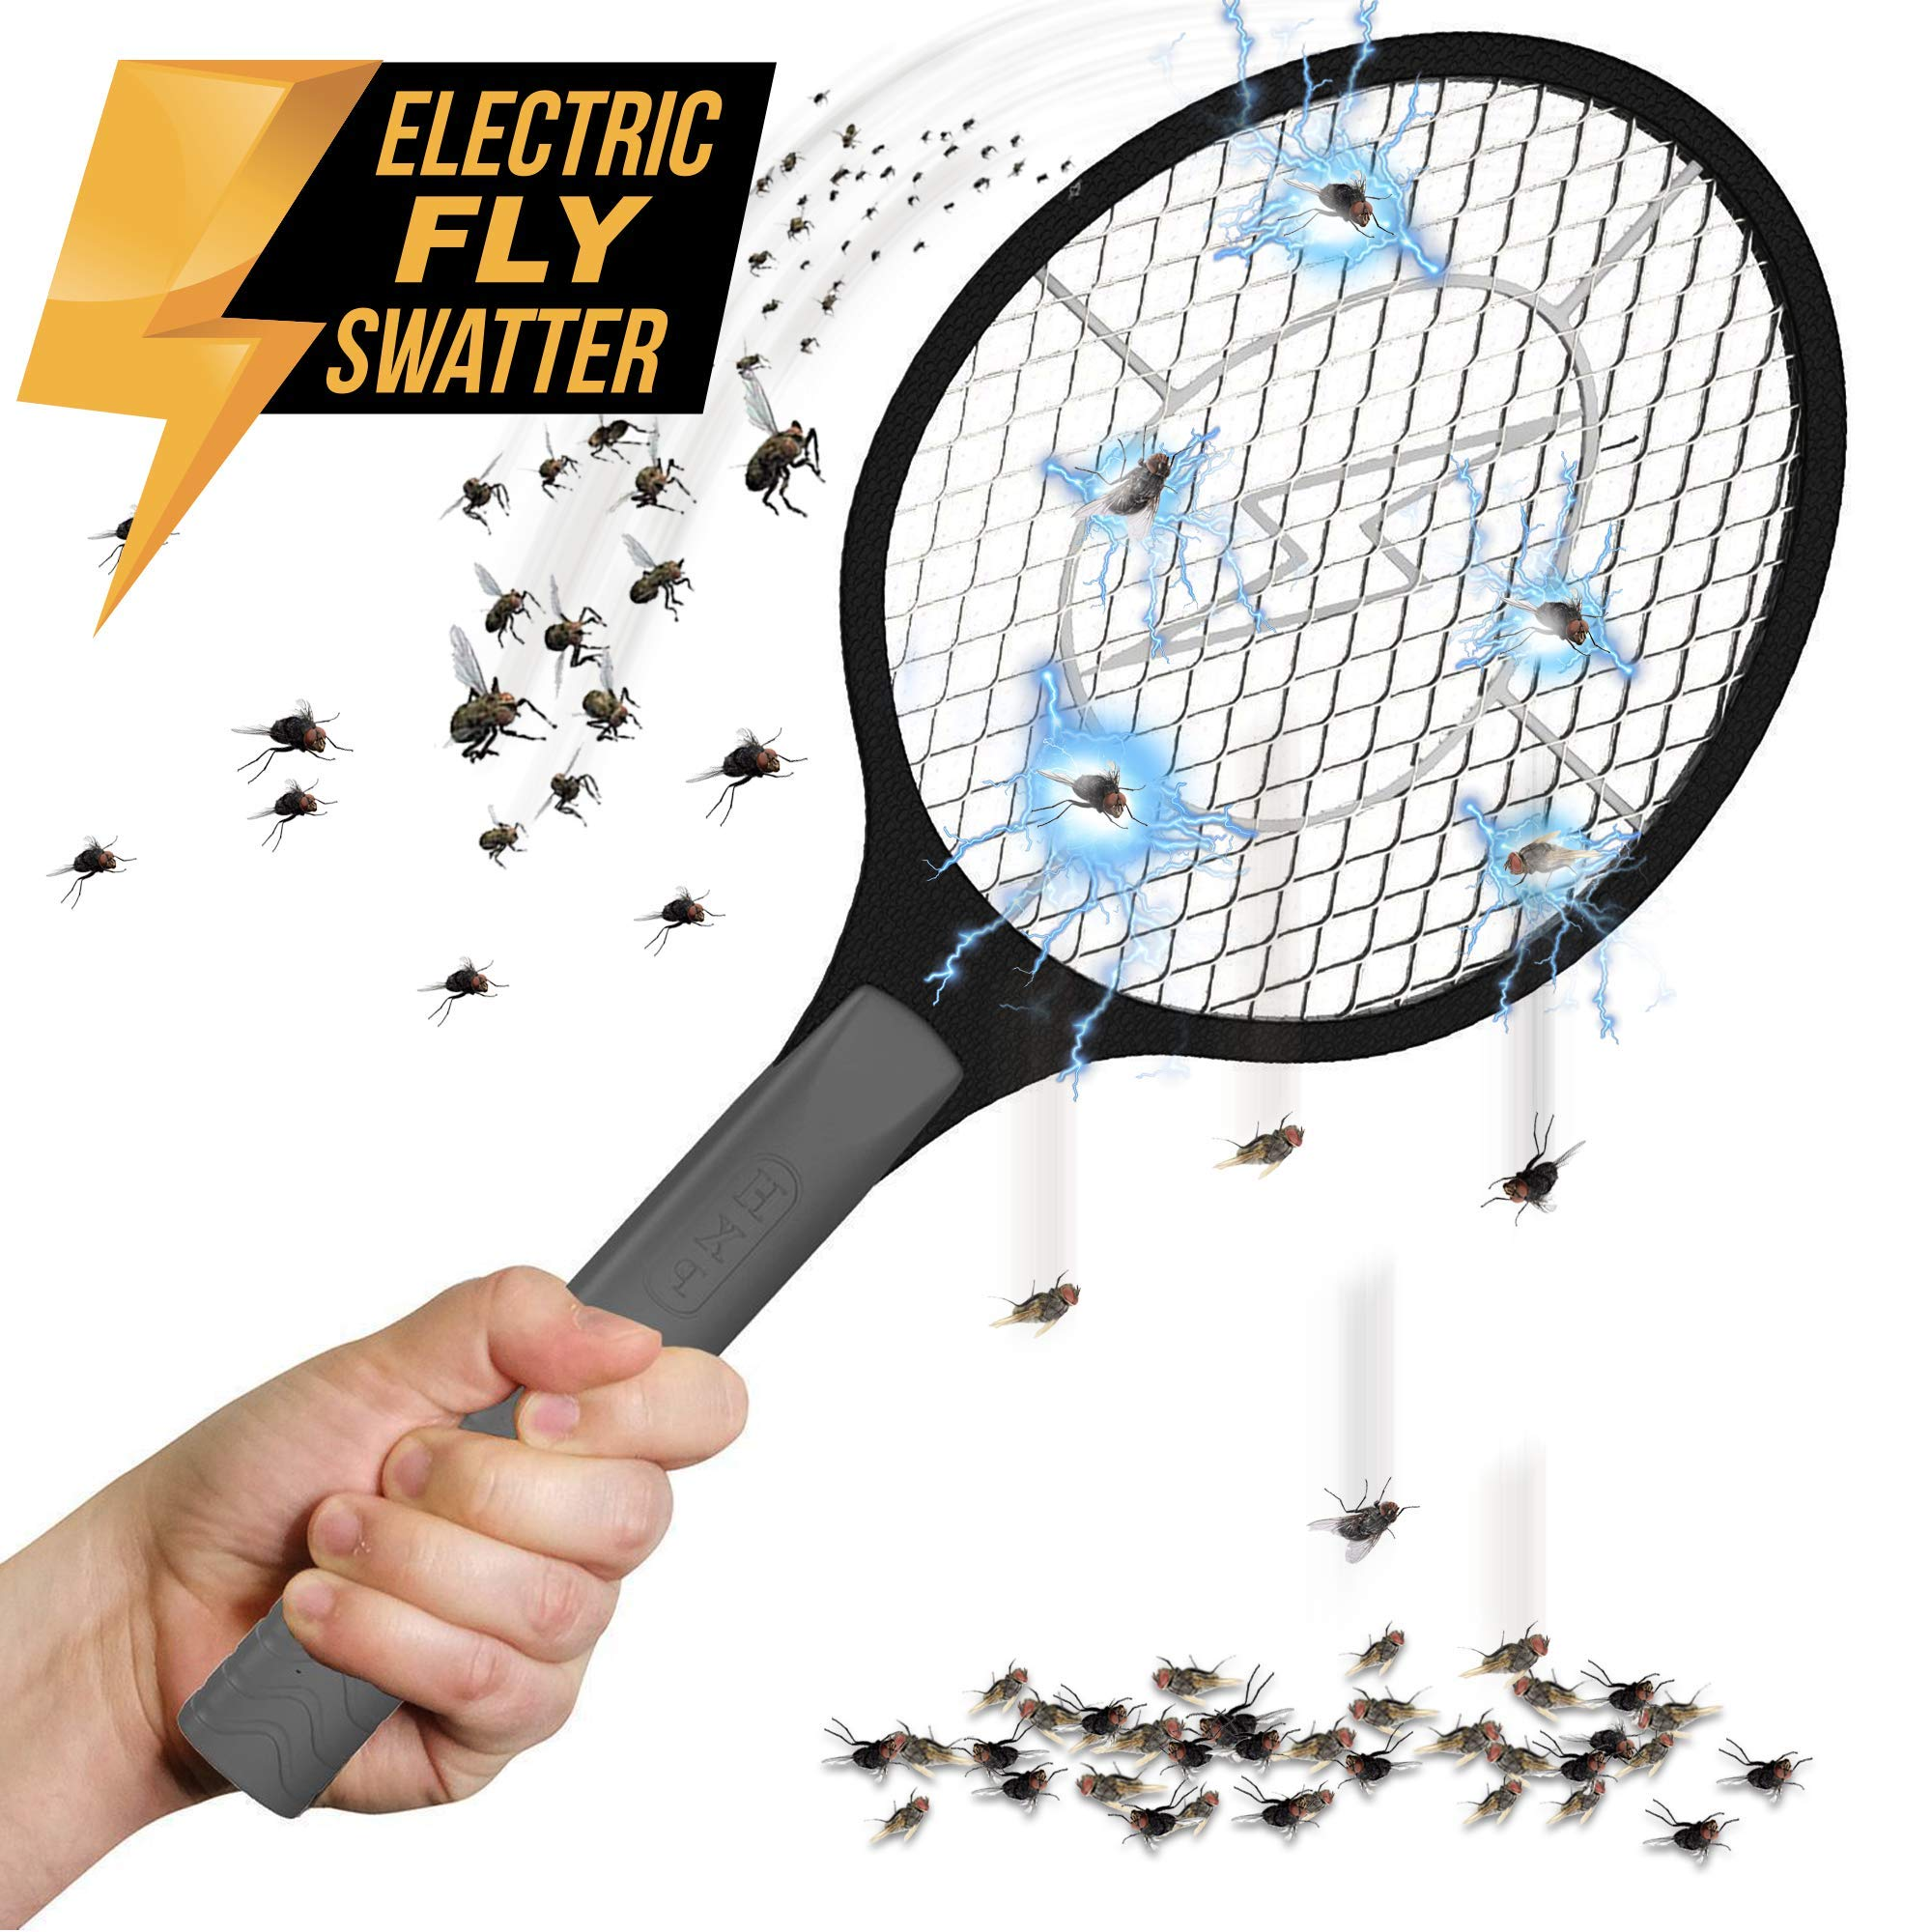 Bugzoff Electric Fly Swatter [Destroys Insects in Seconds] Mosquito Repellent & Insect Bug Killer Best Zapper Racket for Flies - Swat Wasp Insect Repellent Indoor and Outdoor Trap & Zap Pest Control by Bugzoff